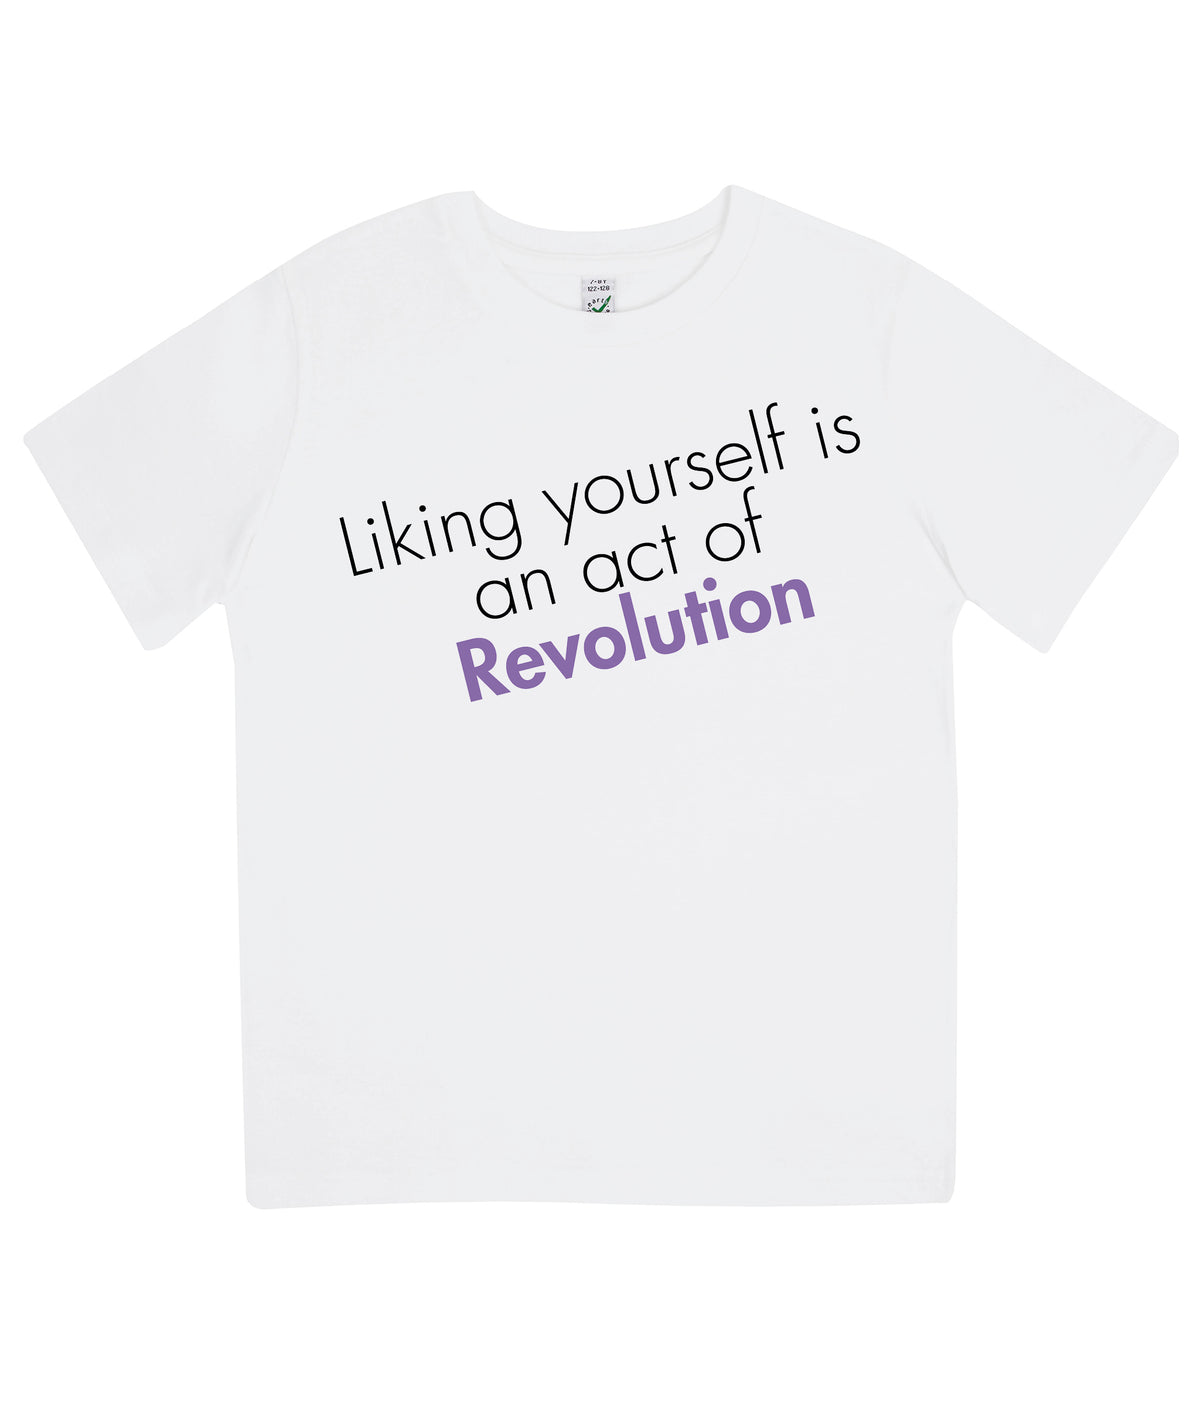 Liking Yourself Is An Act Of Revolution Kids Organic Feminist T Shirt White